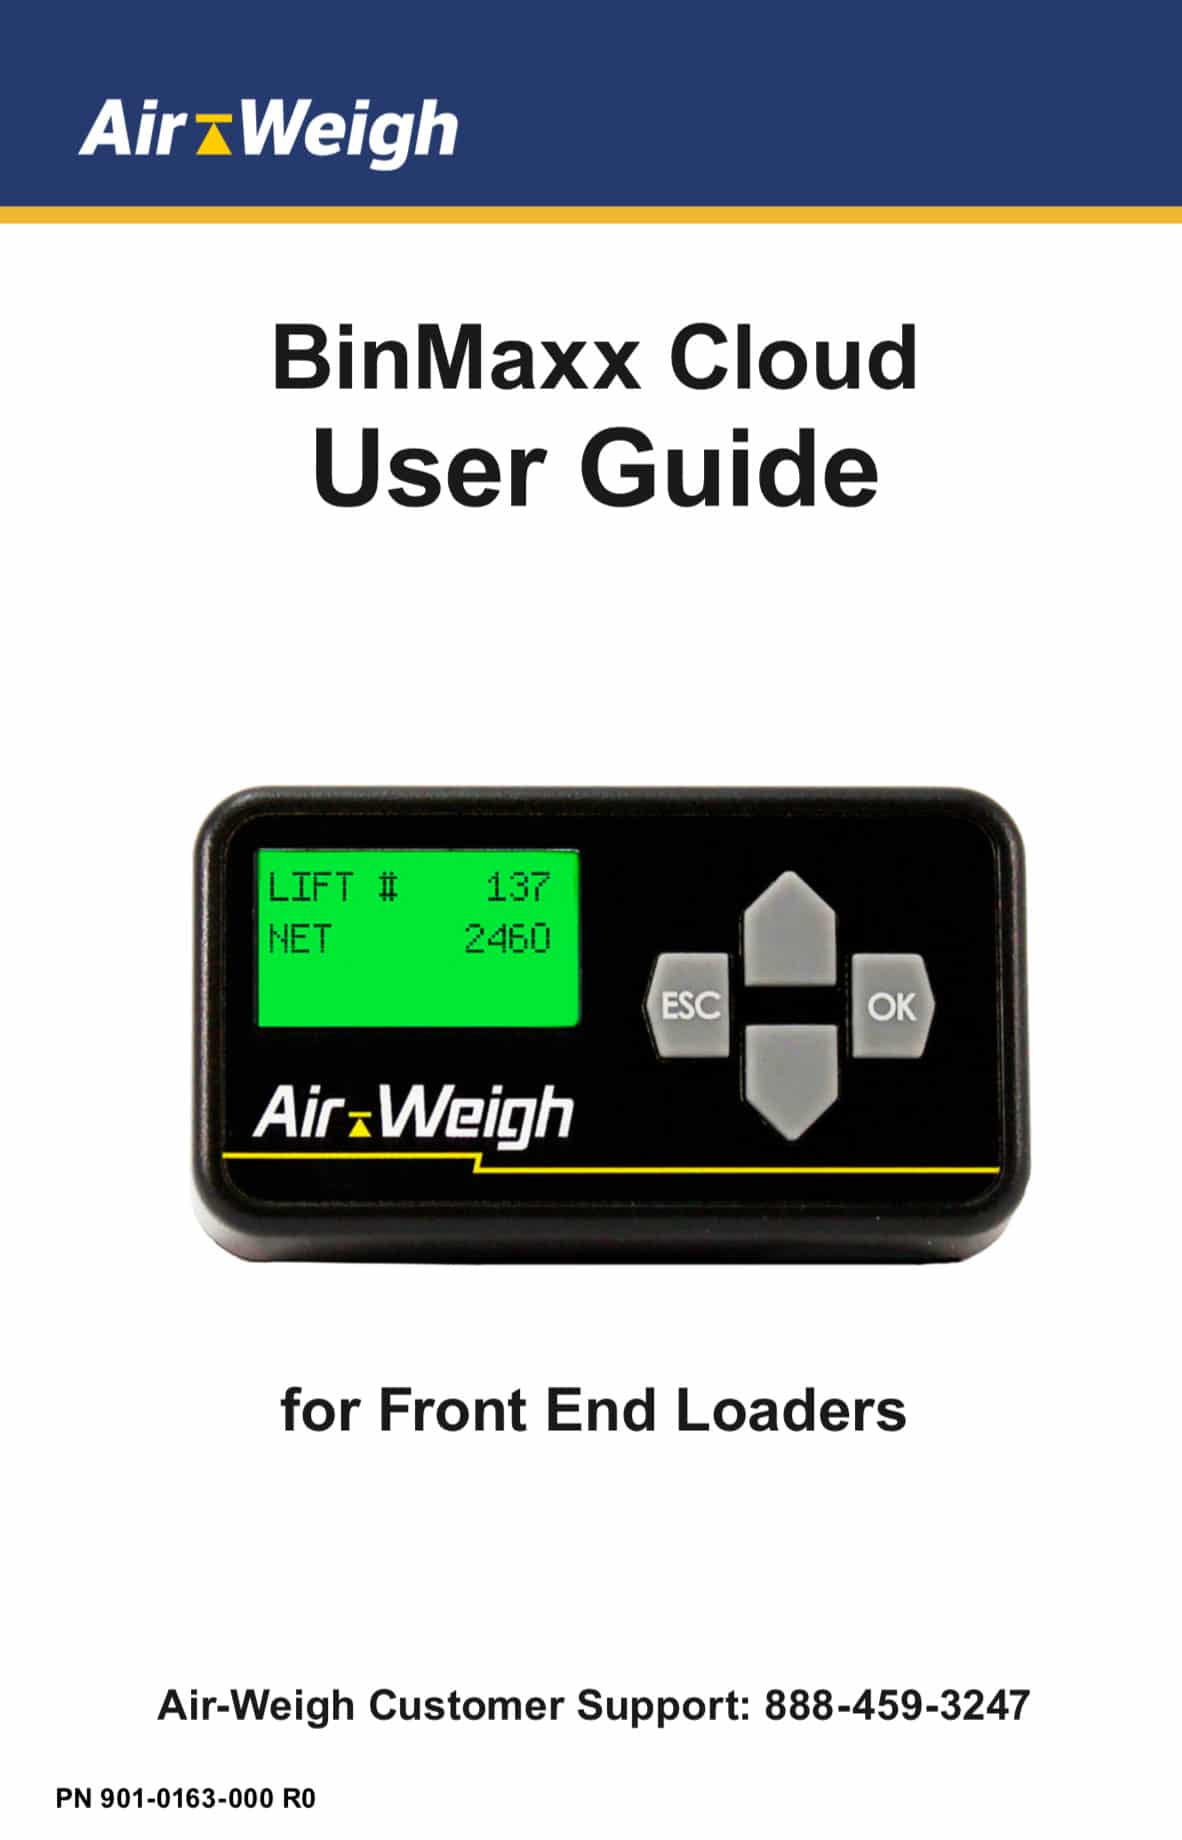 BinMaxx Cloud User Guide for Front End Loaders